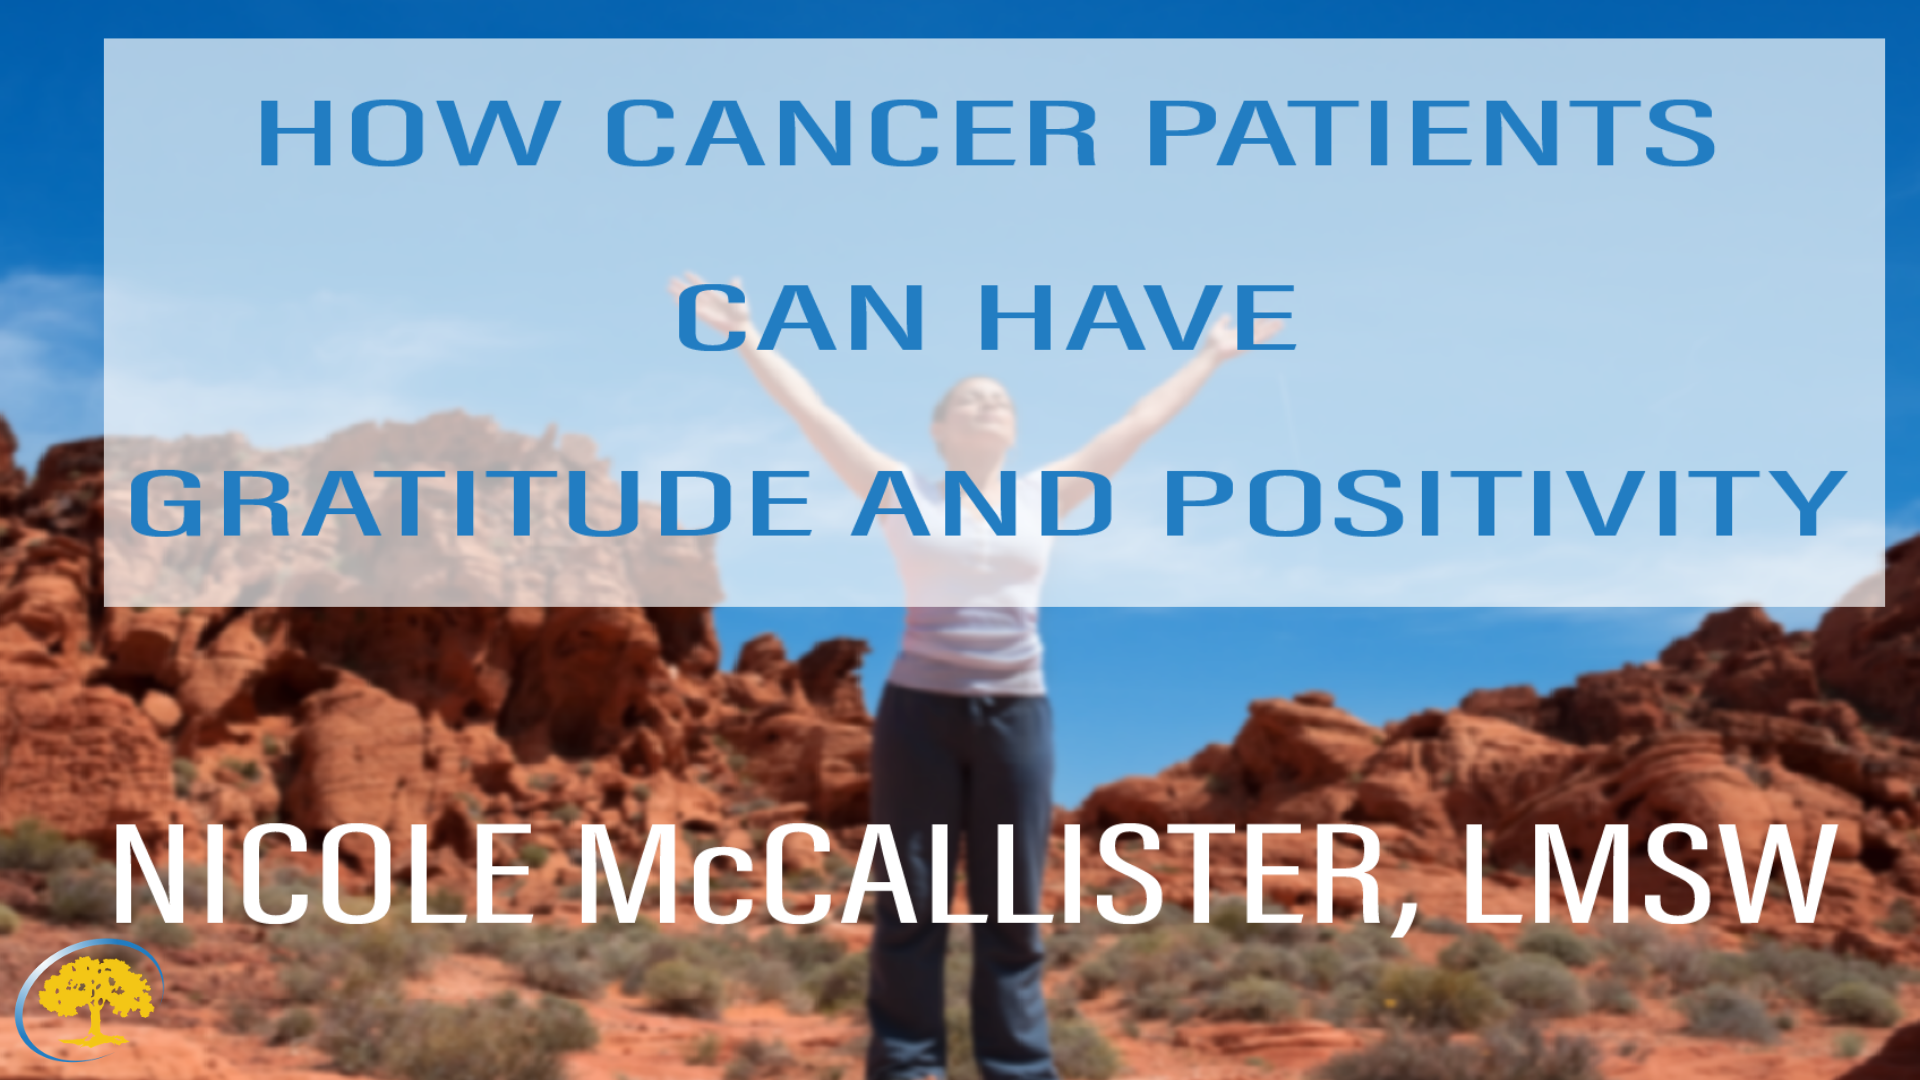 How Cancer Patients Can Have Gratitude and Positivity